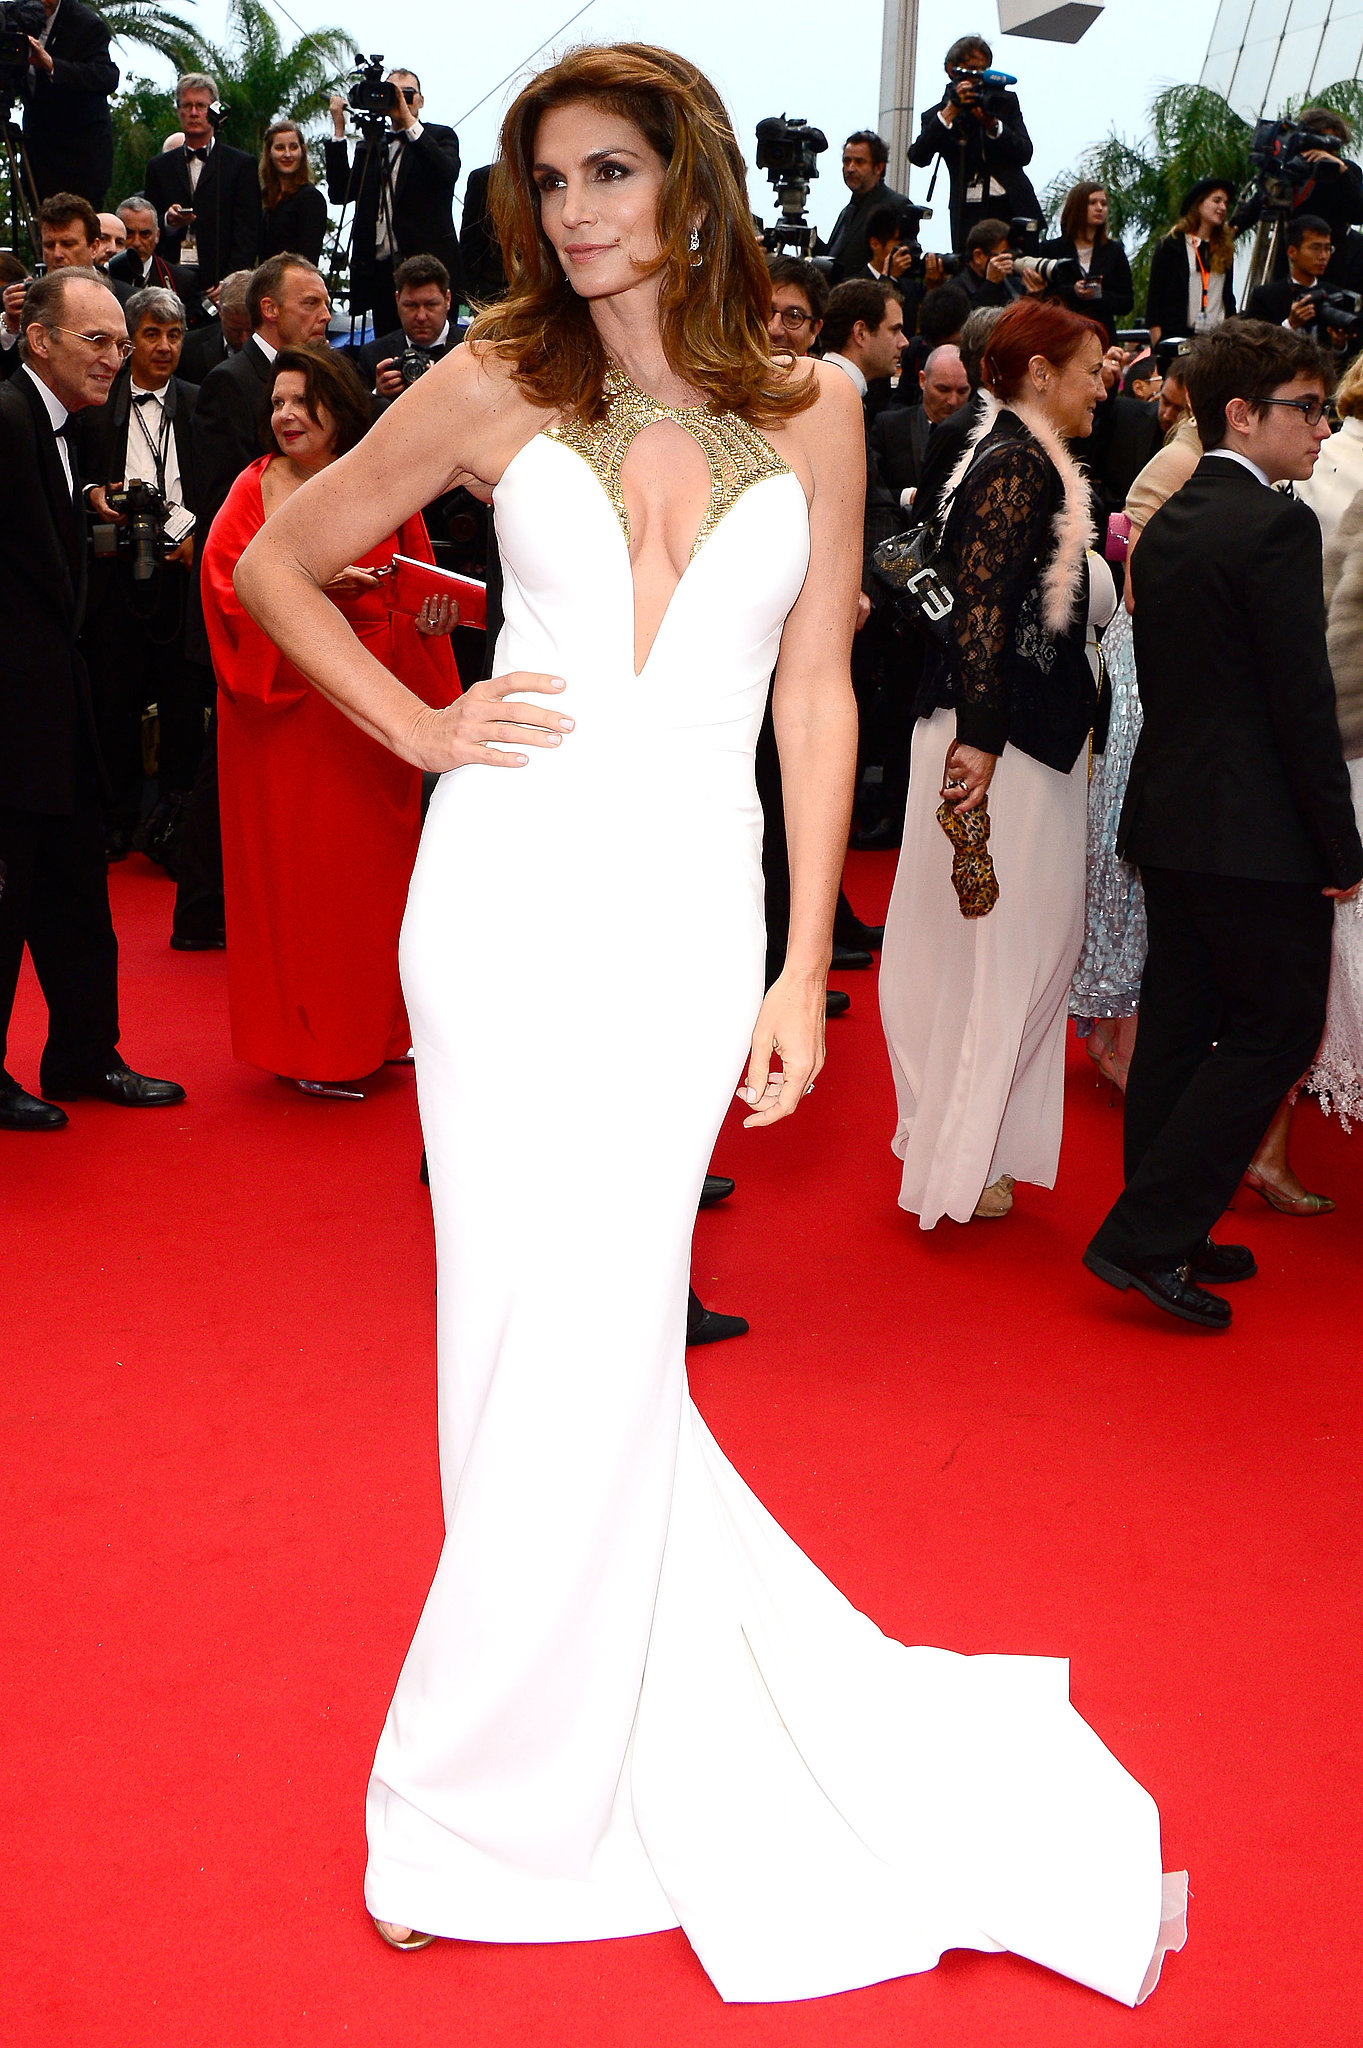 Cindy Crawford in Roberto Cavalli at the Cannes premiere of The Great Gatsby.